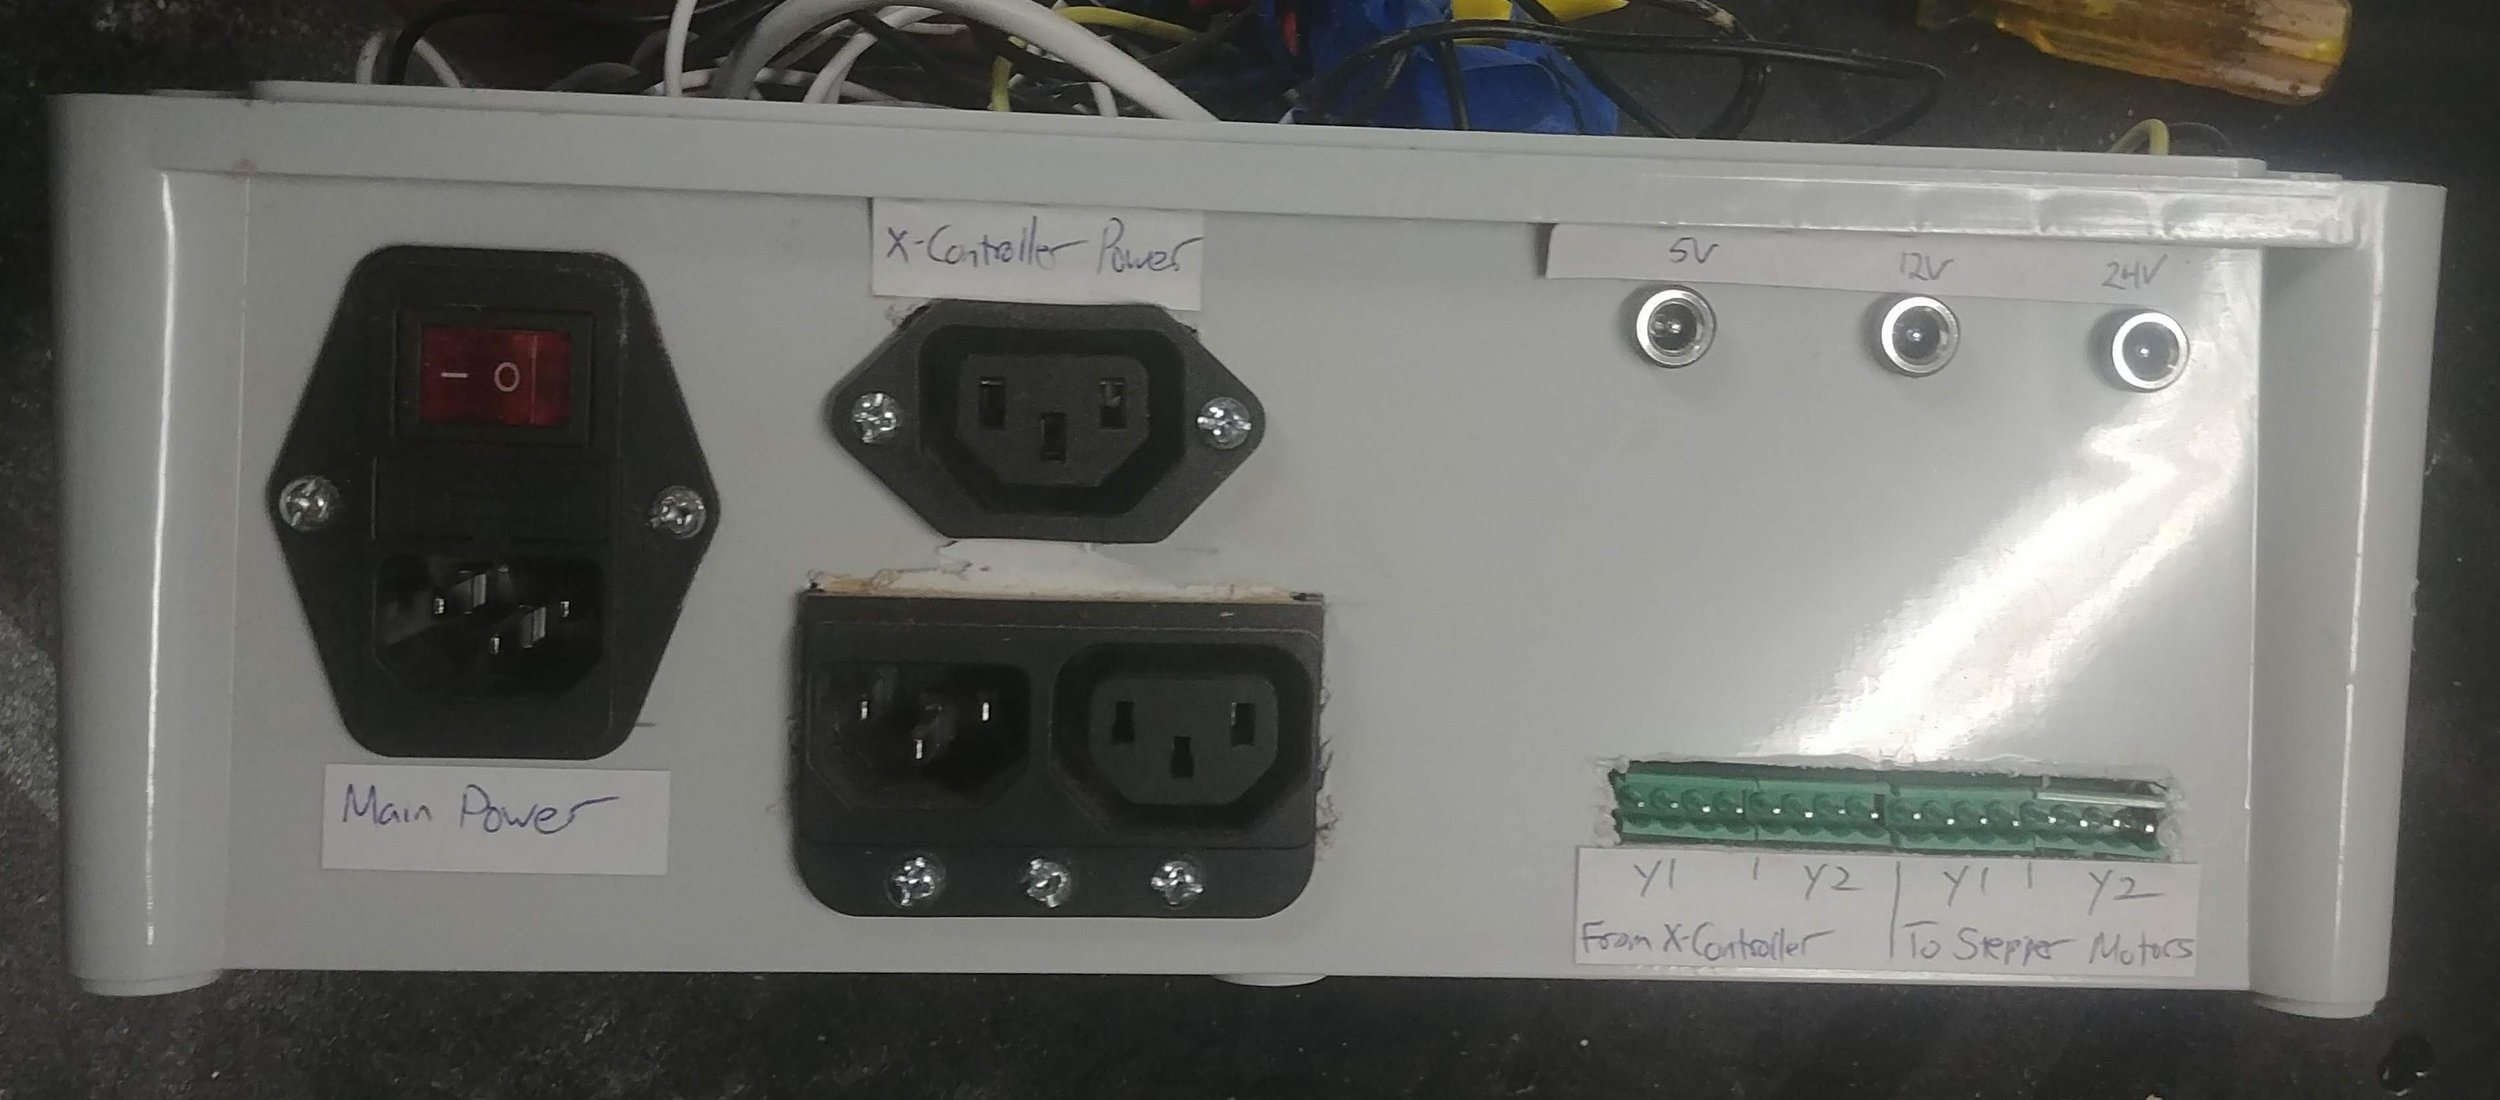 The inputs & outputs for the steppers, the main power, and various low voltage supplies.